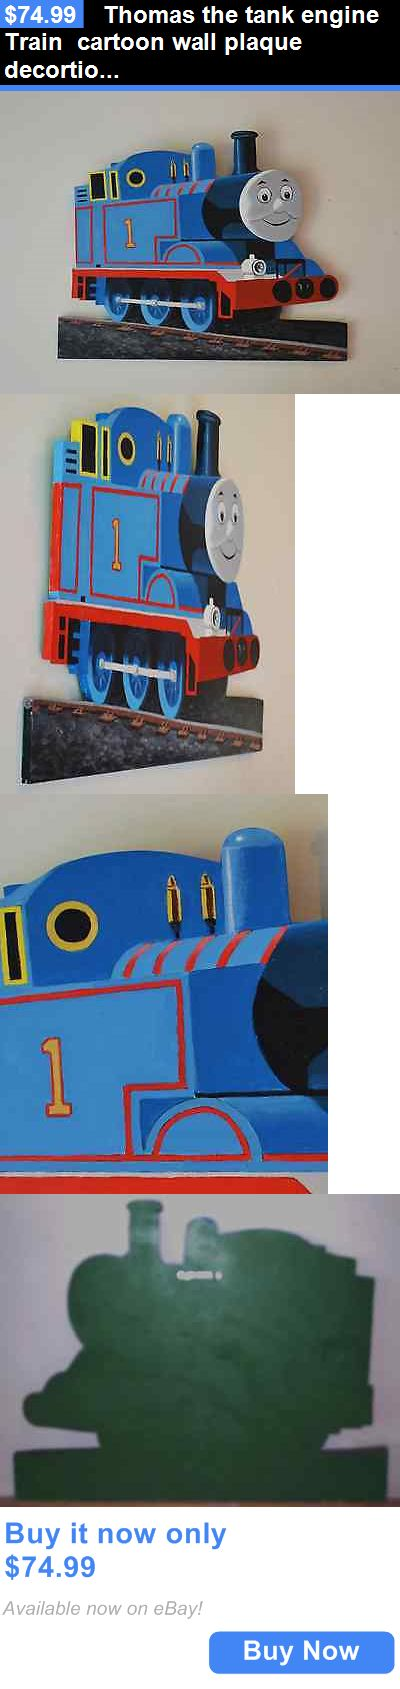 Home Decor: Thomas The Tank Engine Train Cartoon Wall Plaque Decortion BUY IT NOW ONLY: $74.99